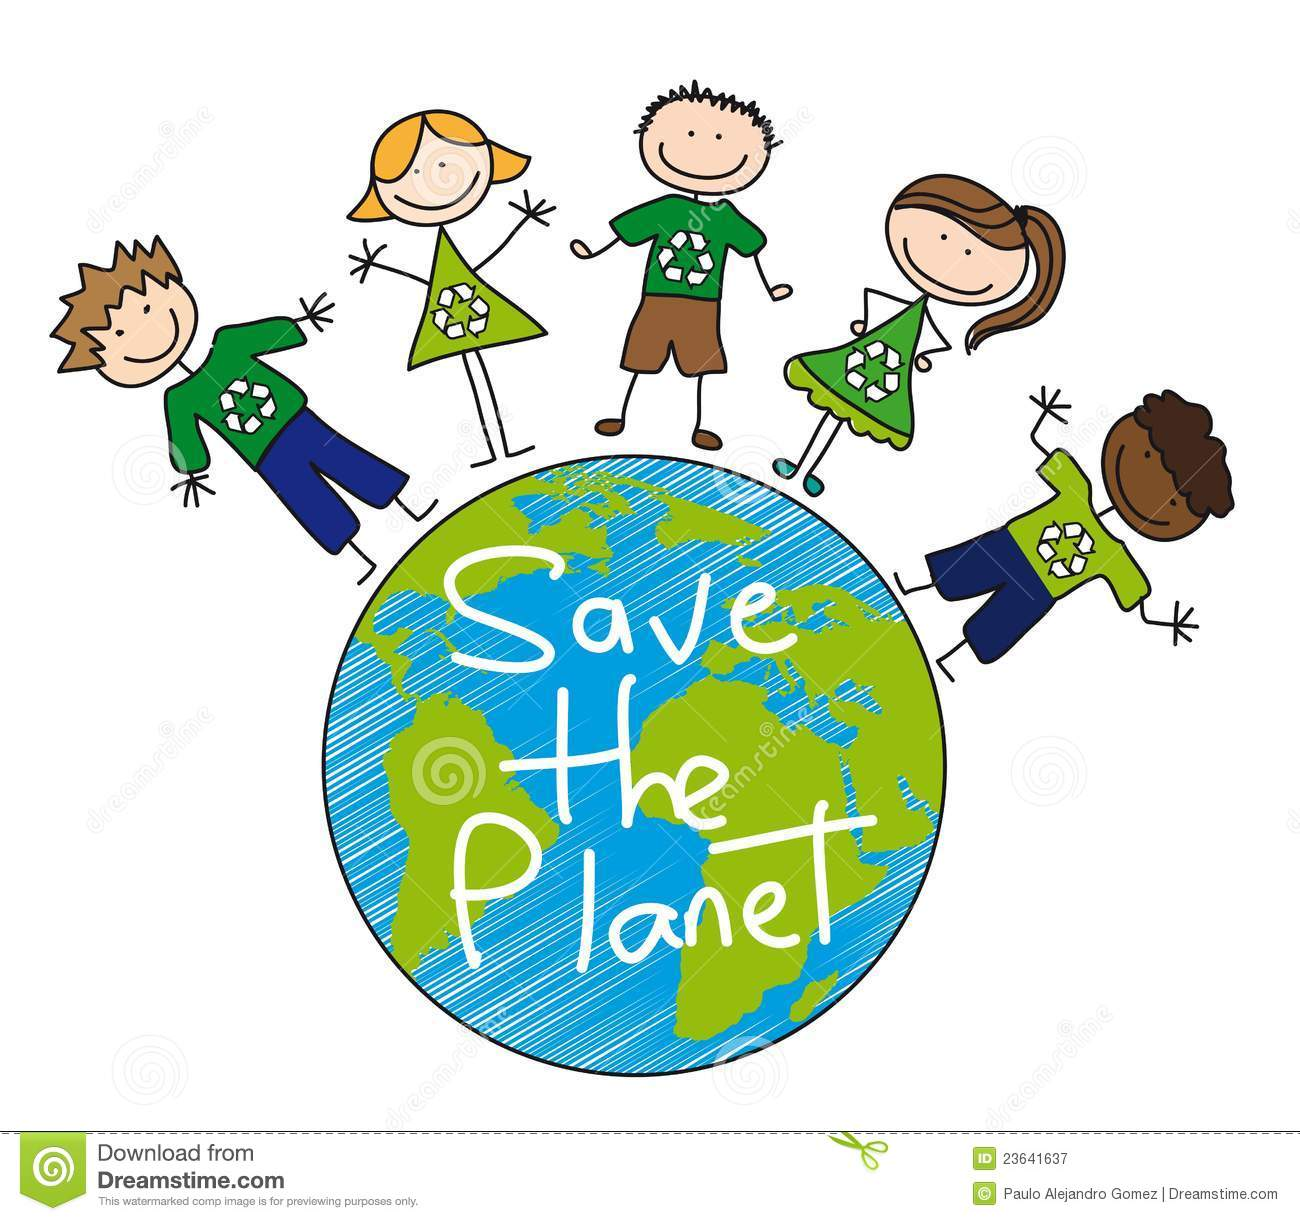 protect our earth essay The environment, in general, is very similar to the human body it needs to be protected the same way the human body should be protected from any viruses or infections our global environment reacts to many things that harm it, just as the human body reacts to a disease many things that harm our environment, and most.